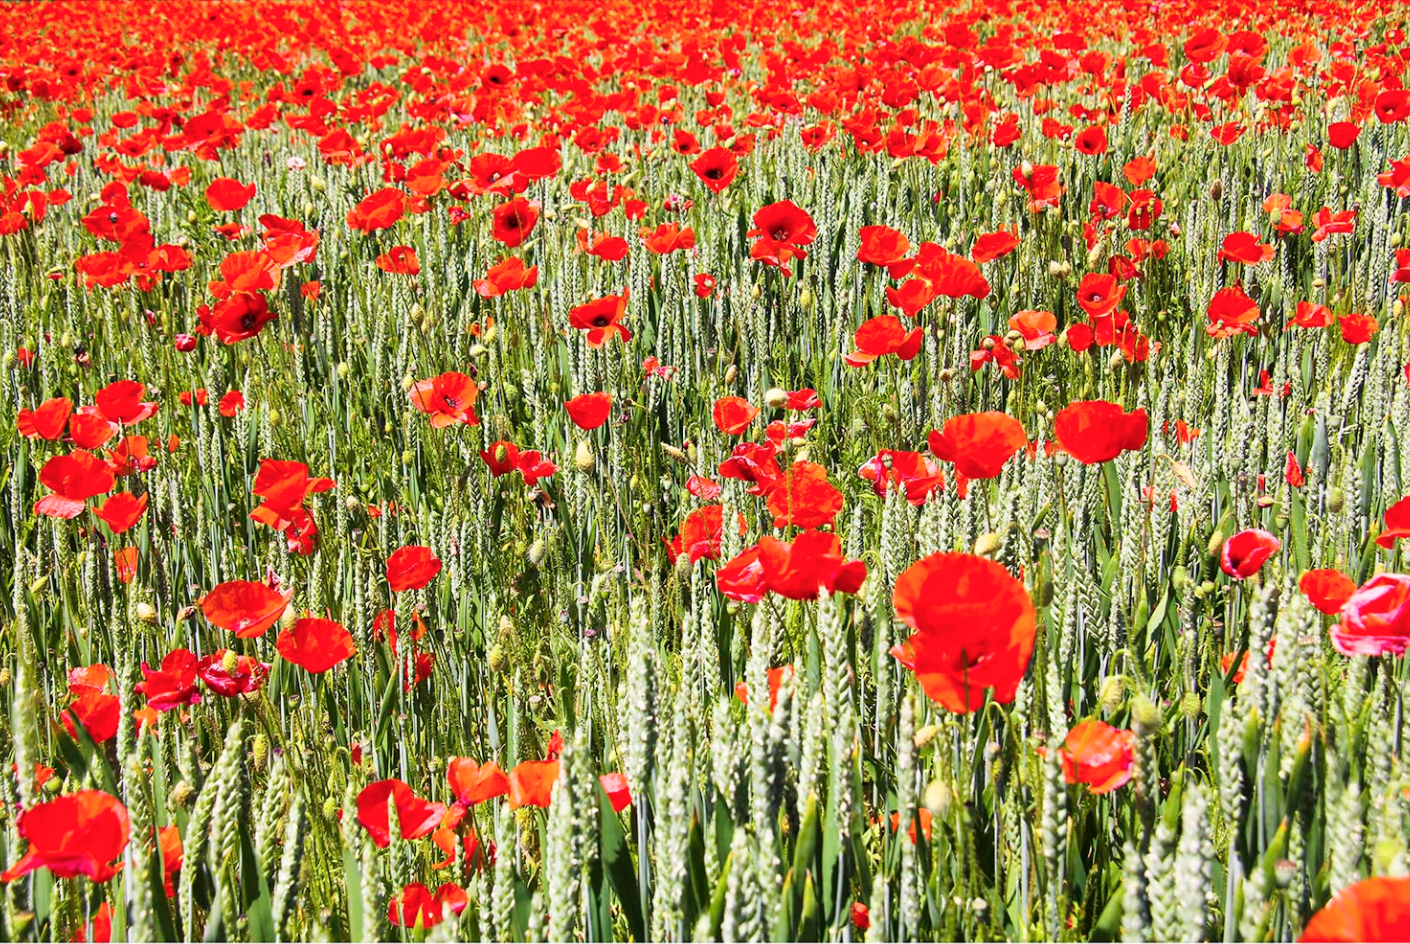 43. Perfect Poppies, Italy 2012